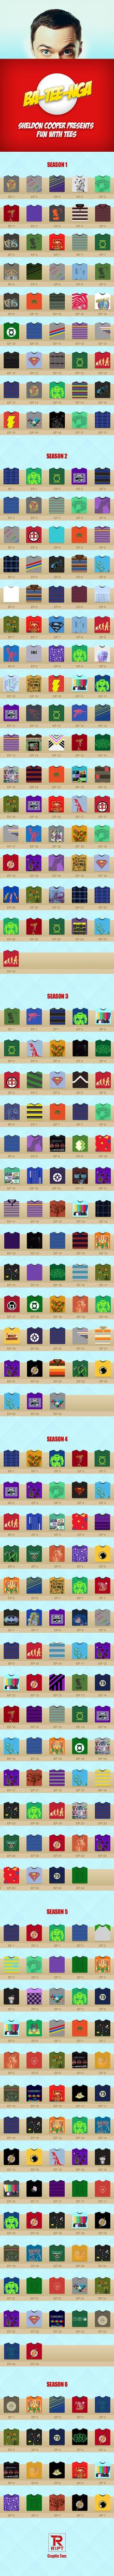 Every T-Shirt Sheldon Cooper Has Ever Worn In The #BigBangTheory-EPIC!!!!